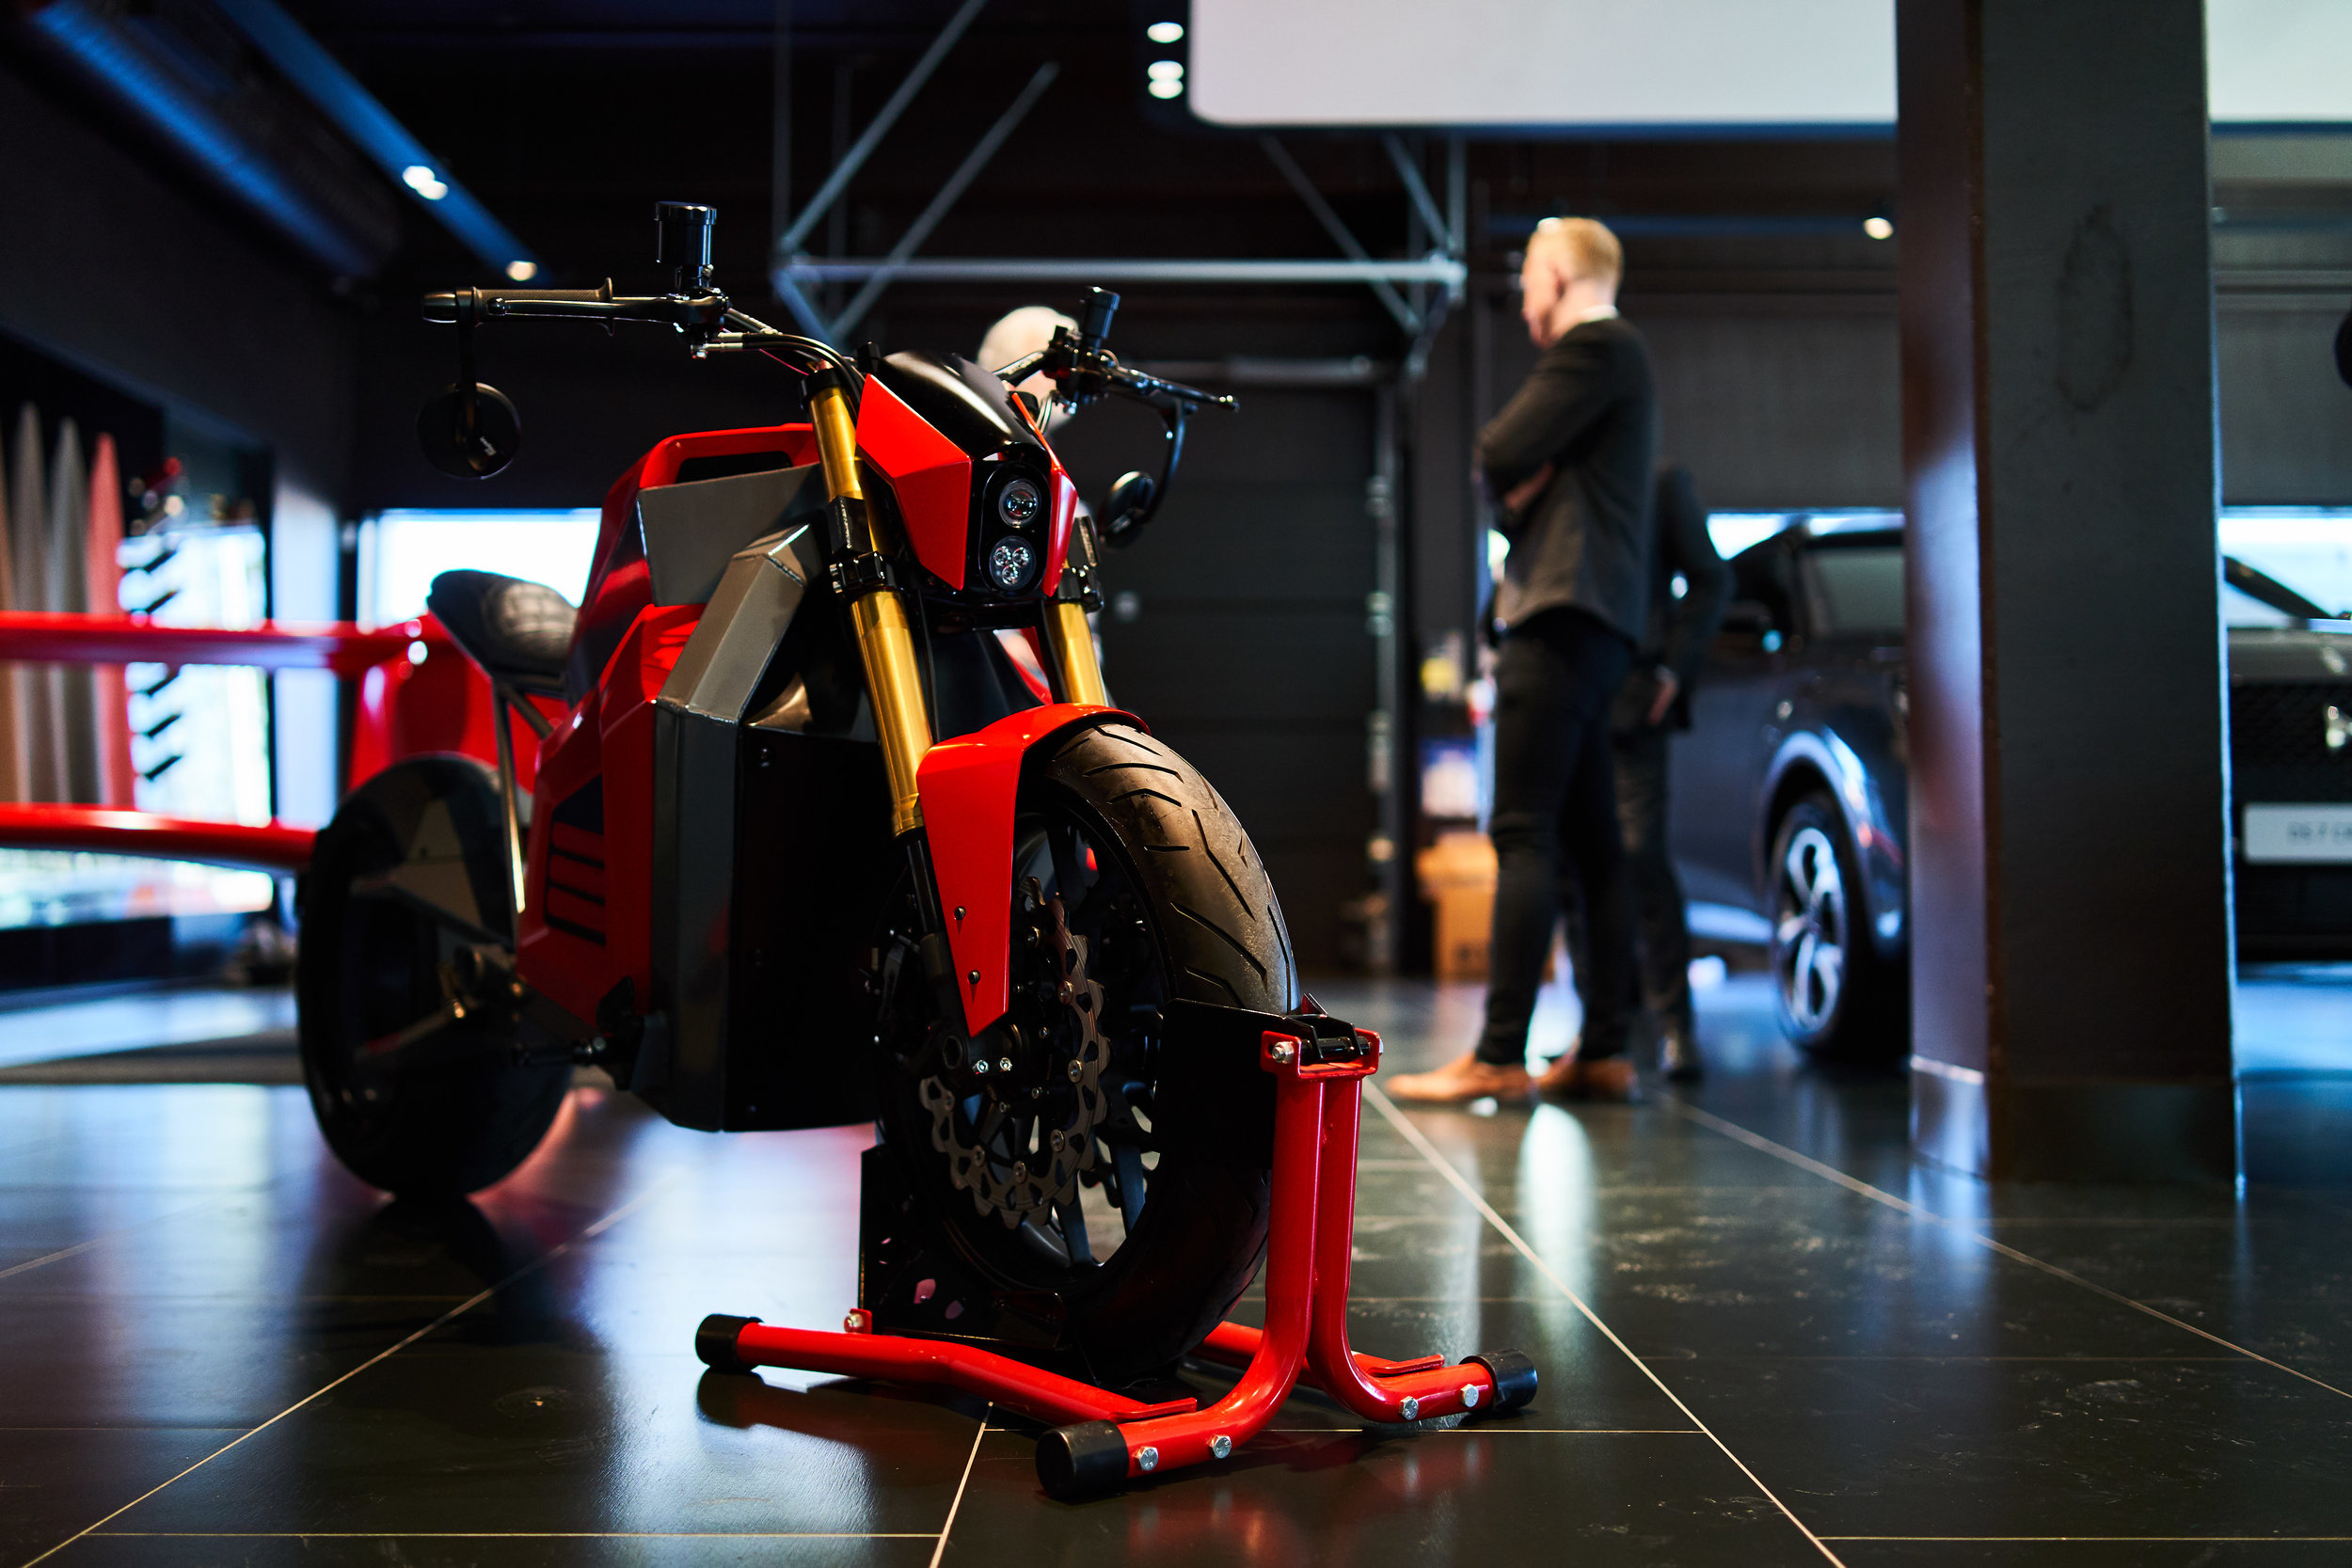 The E2 prototype was showcased at DS Store in Vantaa, Finland.